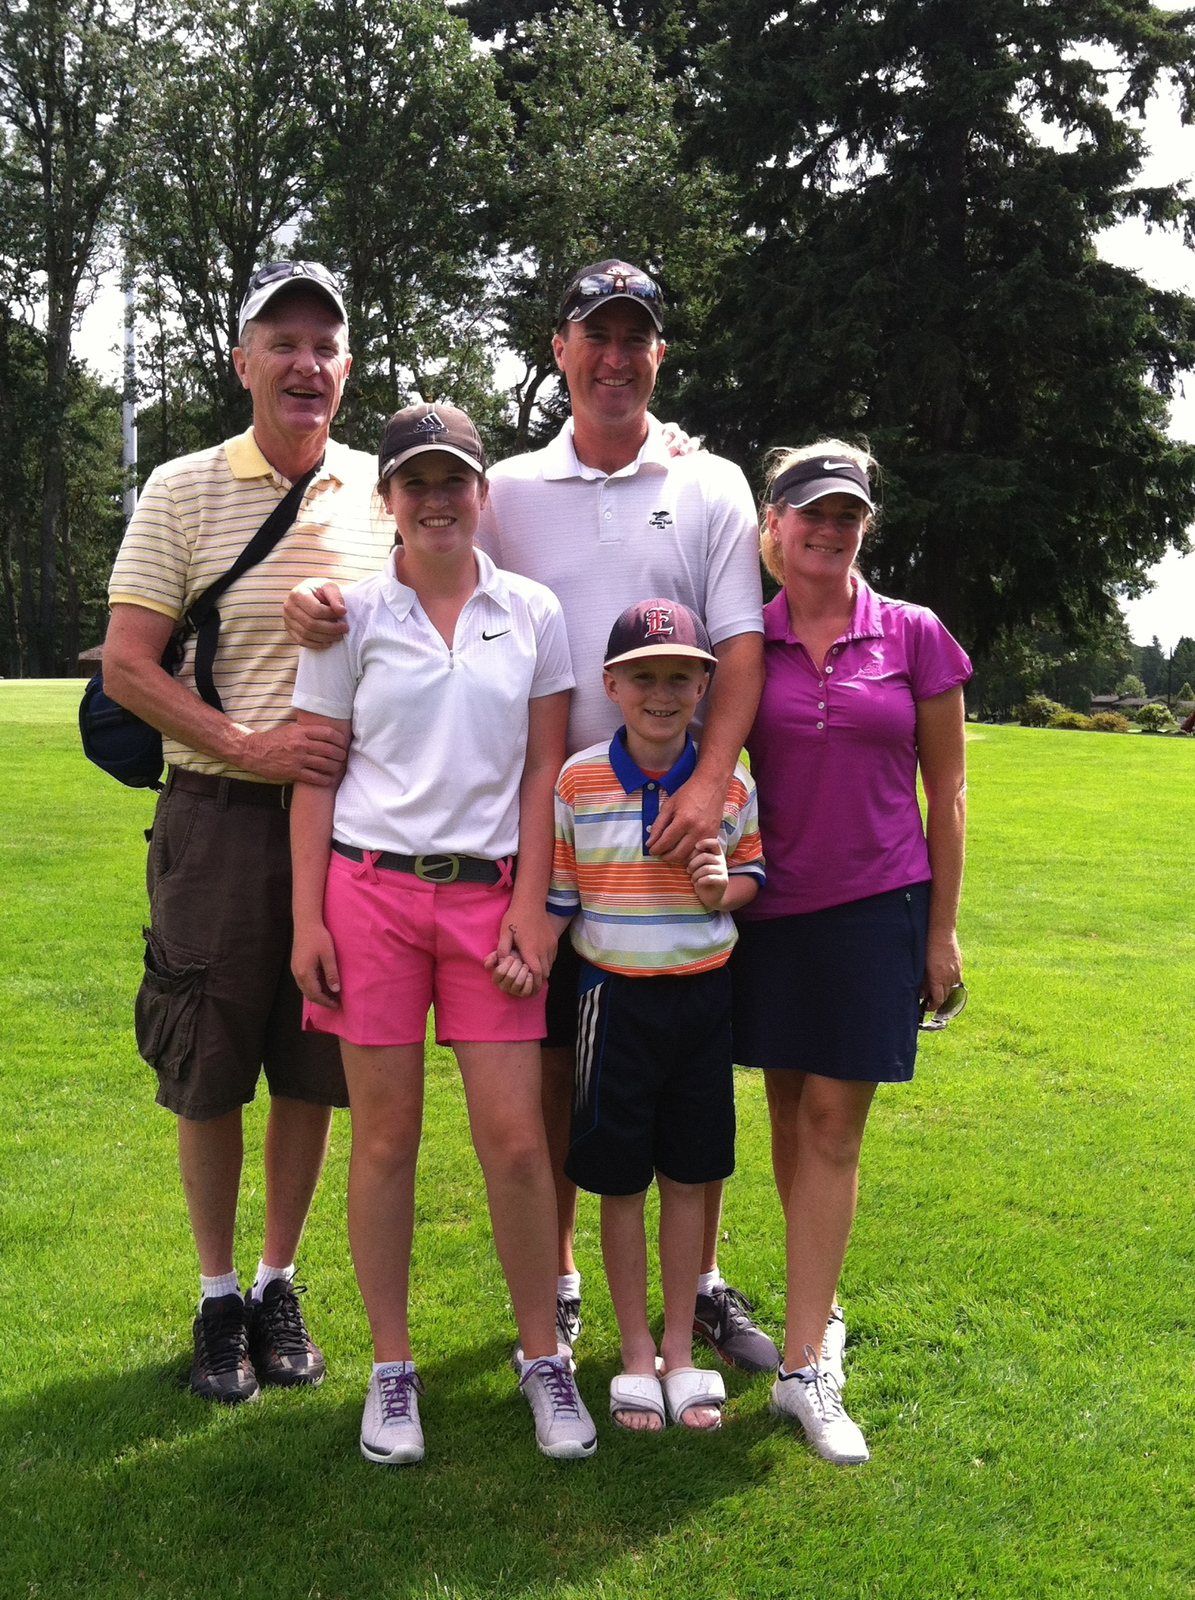 Ashley Fitzgibbons and family winning AJGA